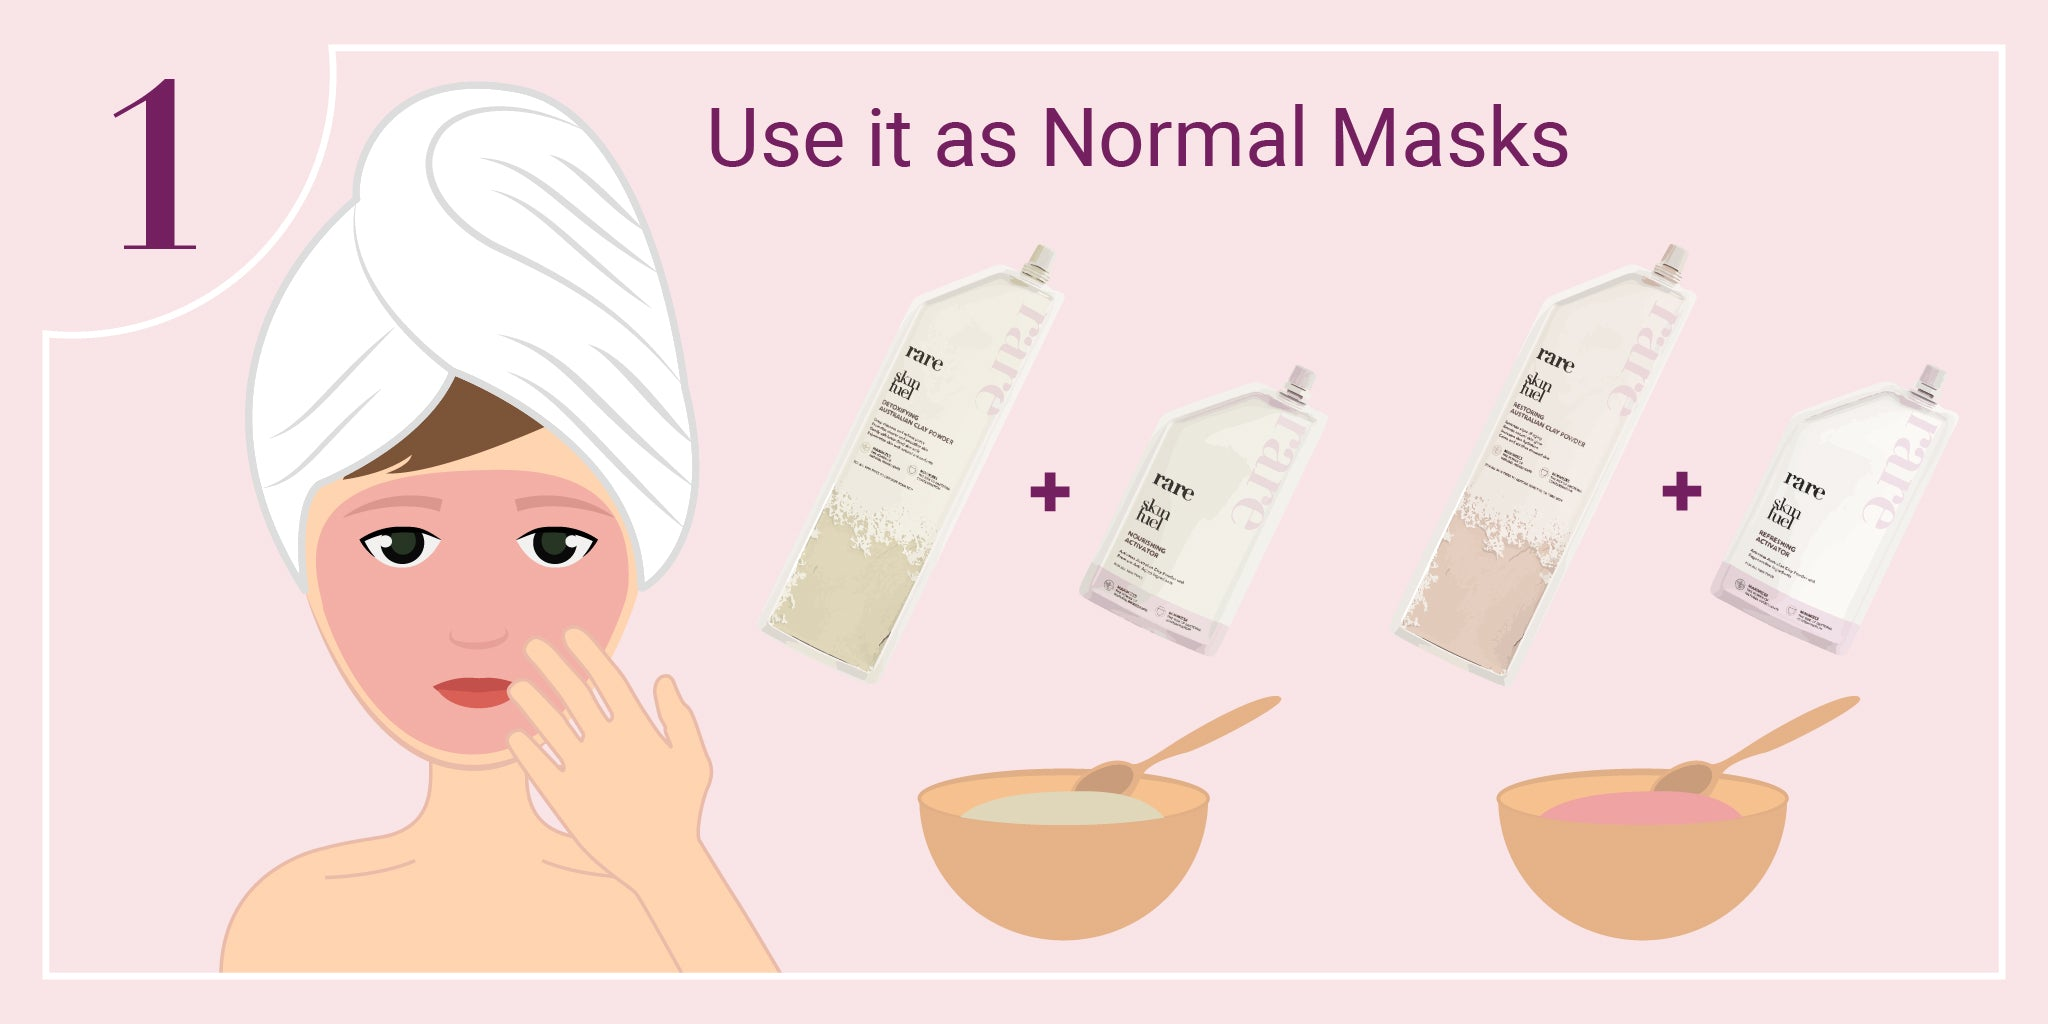 Use it as Normal Masks